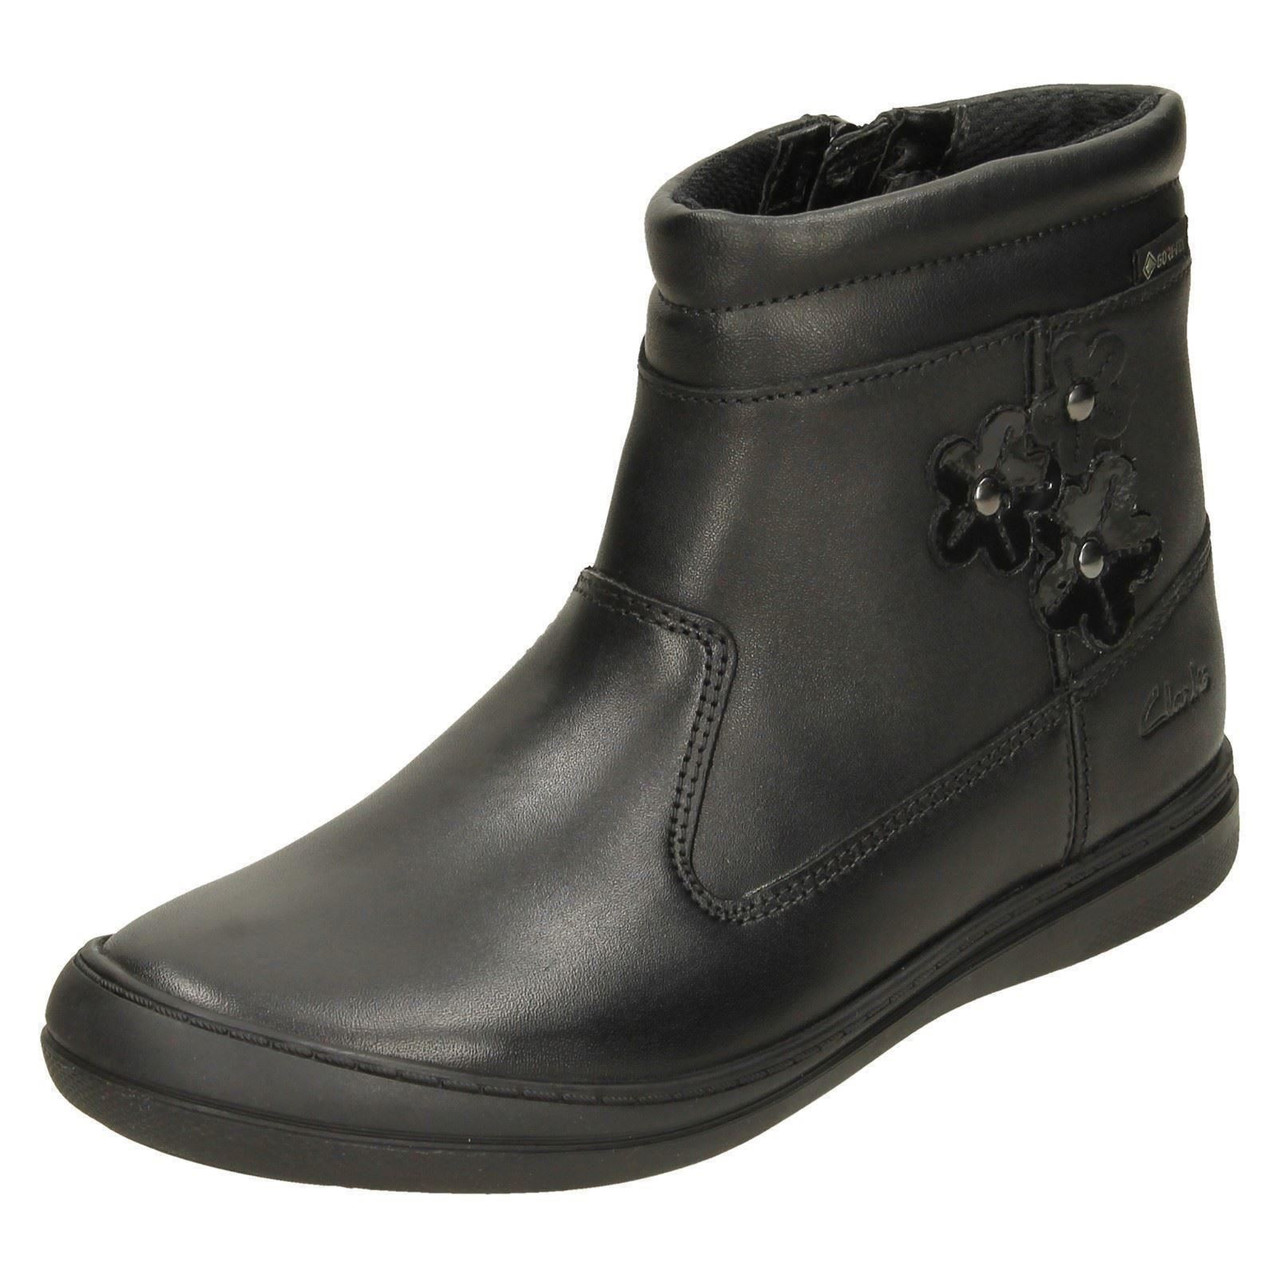 Details about  /Girls Clarks Flower Detailed Ankle Boots ScooterGoGTX